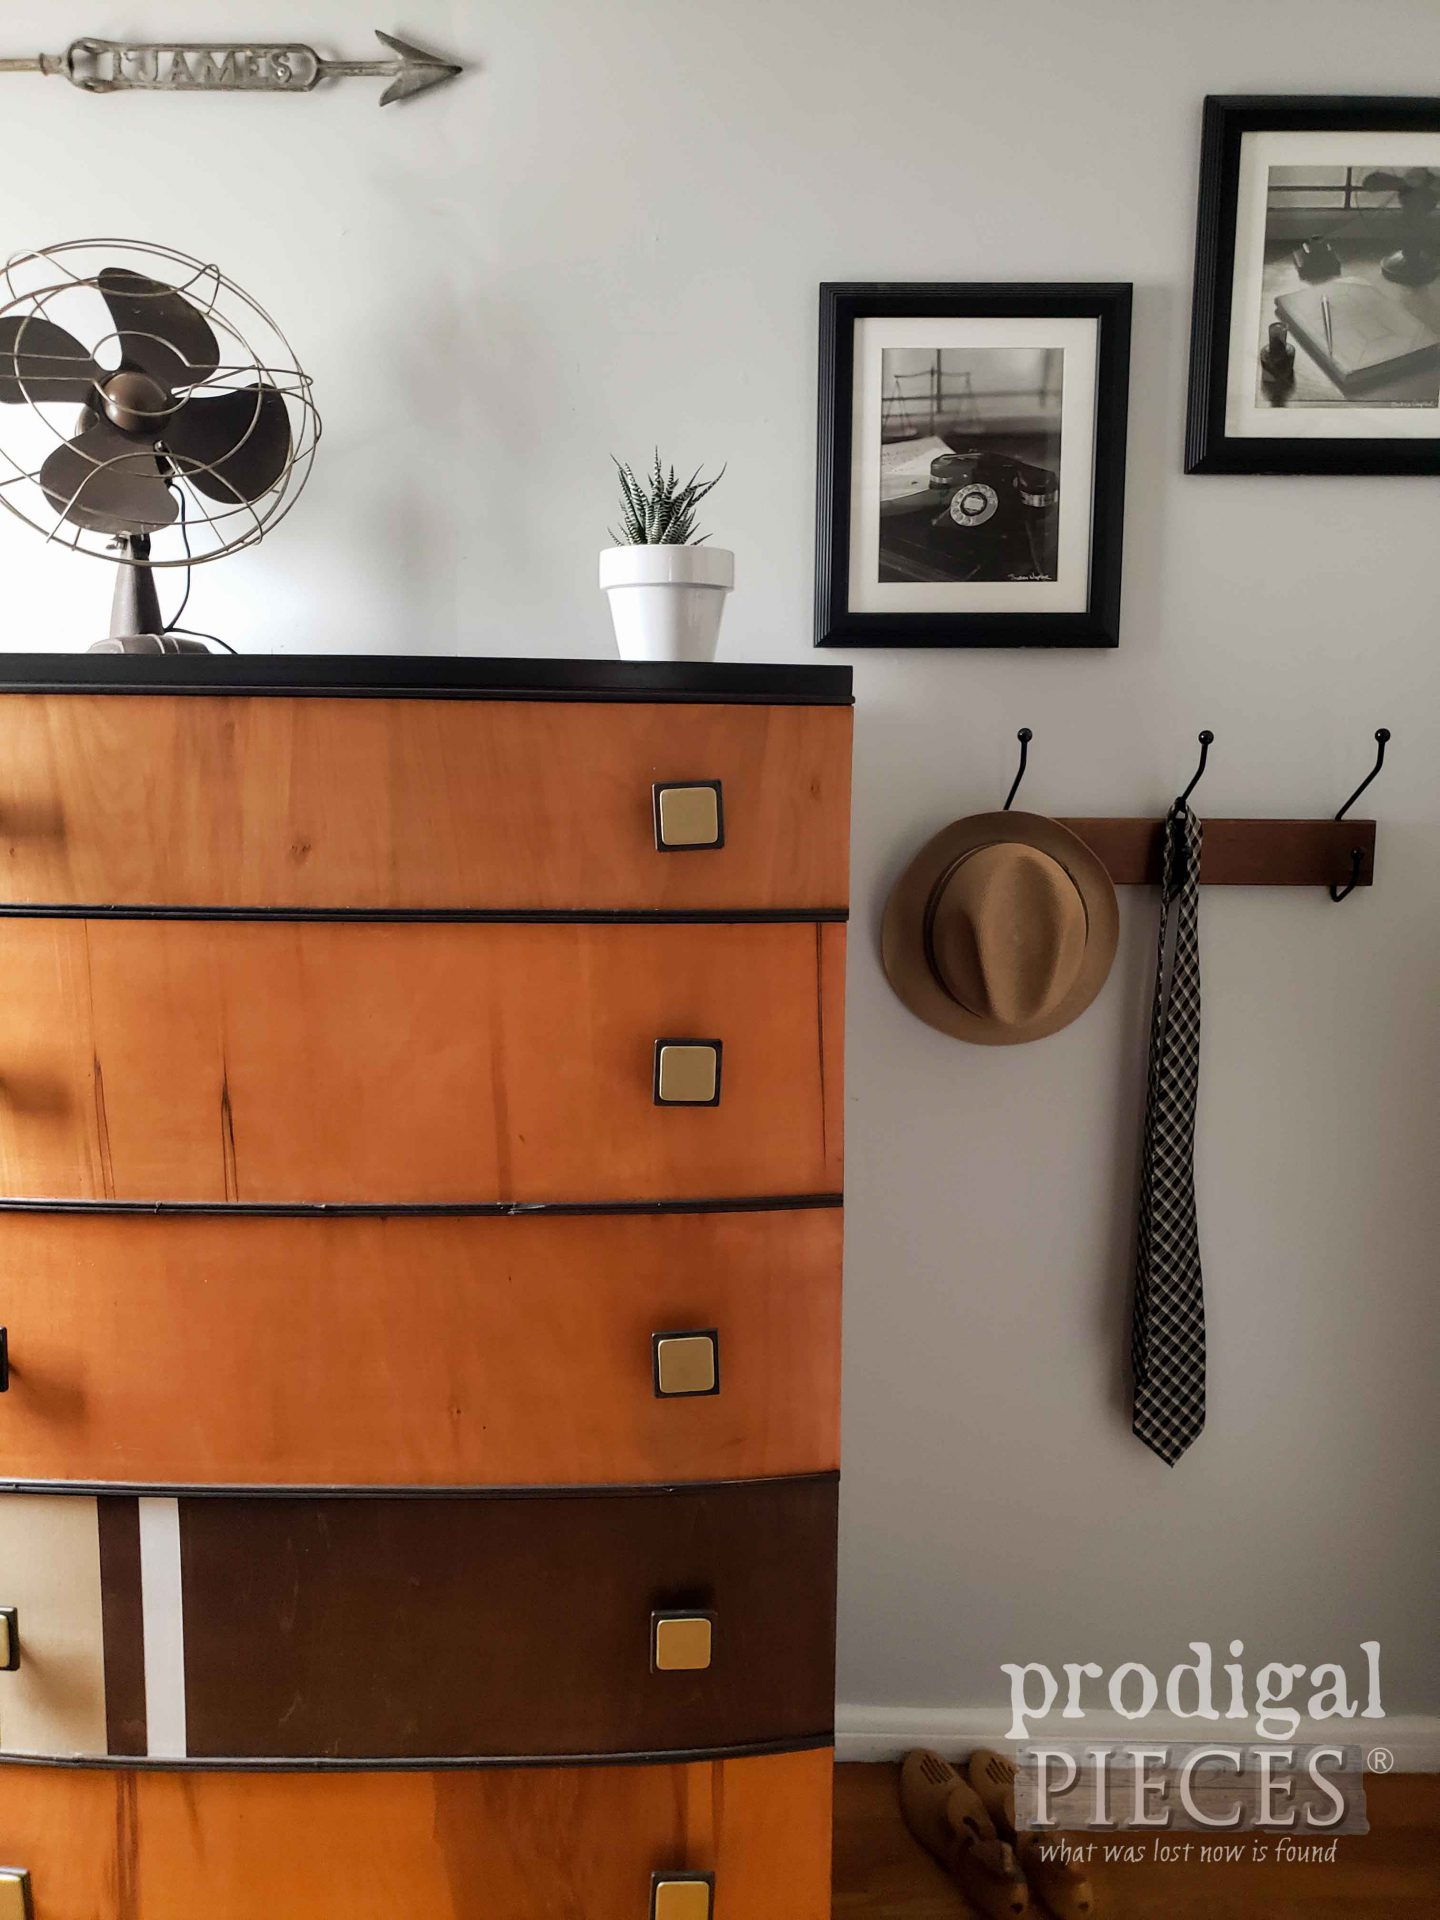 Gentleman's Chest of Drawers in Art Deco Style by Larissa of Prodigal Pieces | prodigalpieces.com #prodigalpieces #diy #furniture #home #homedecor